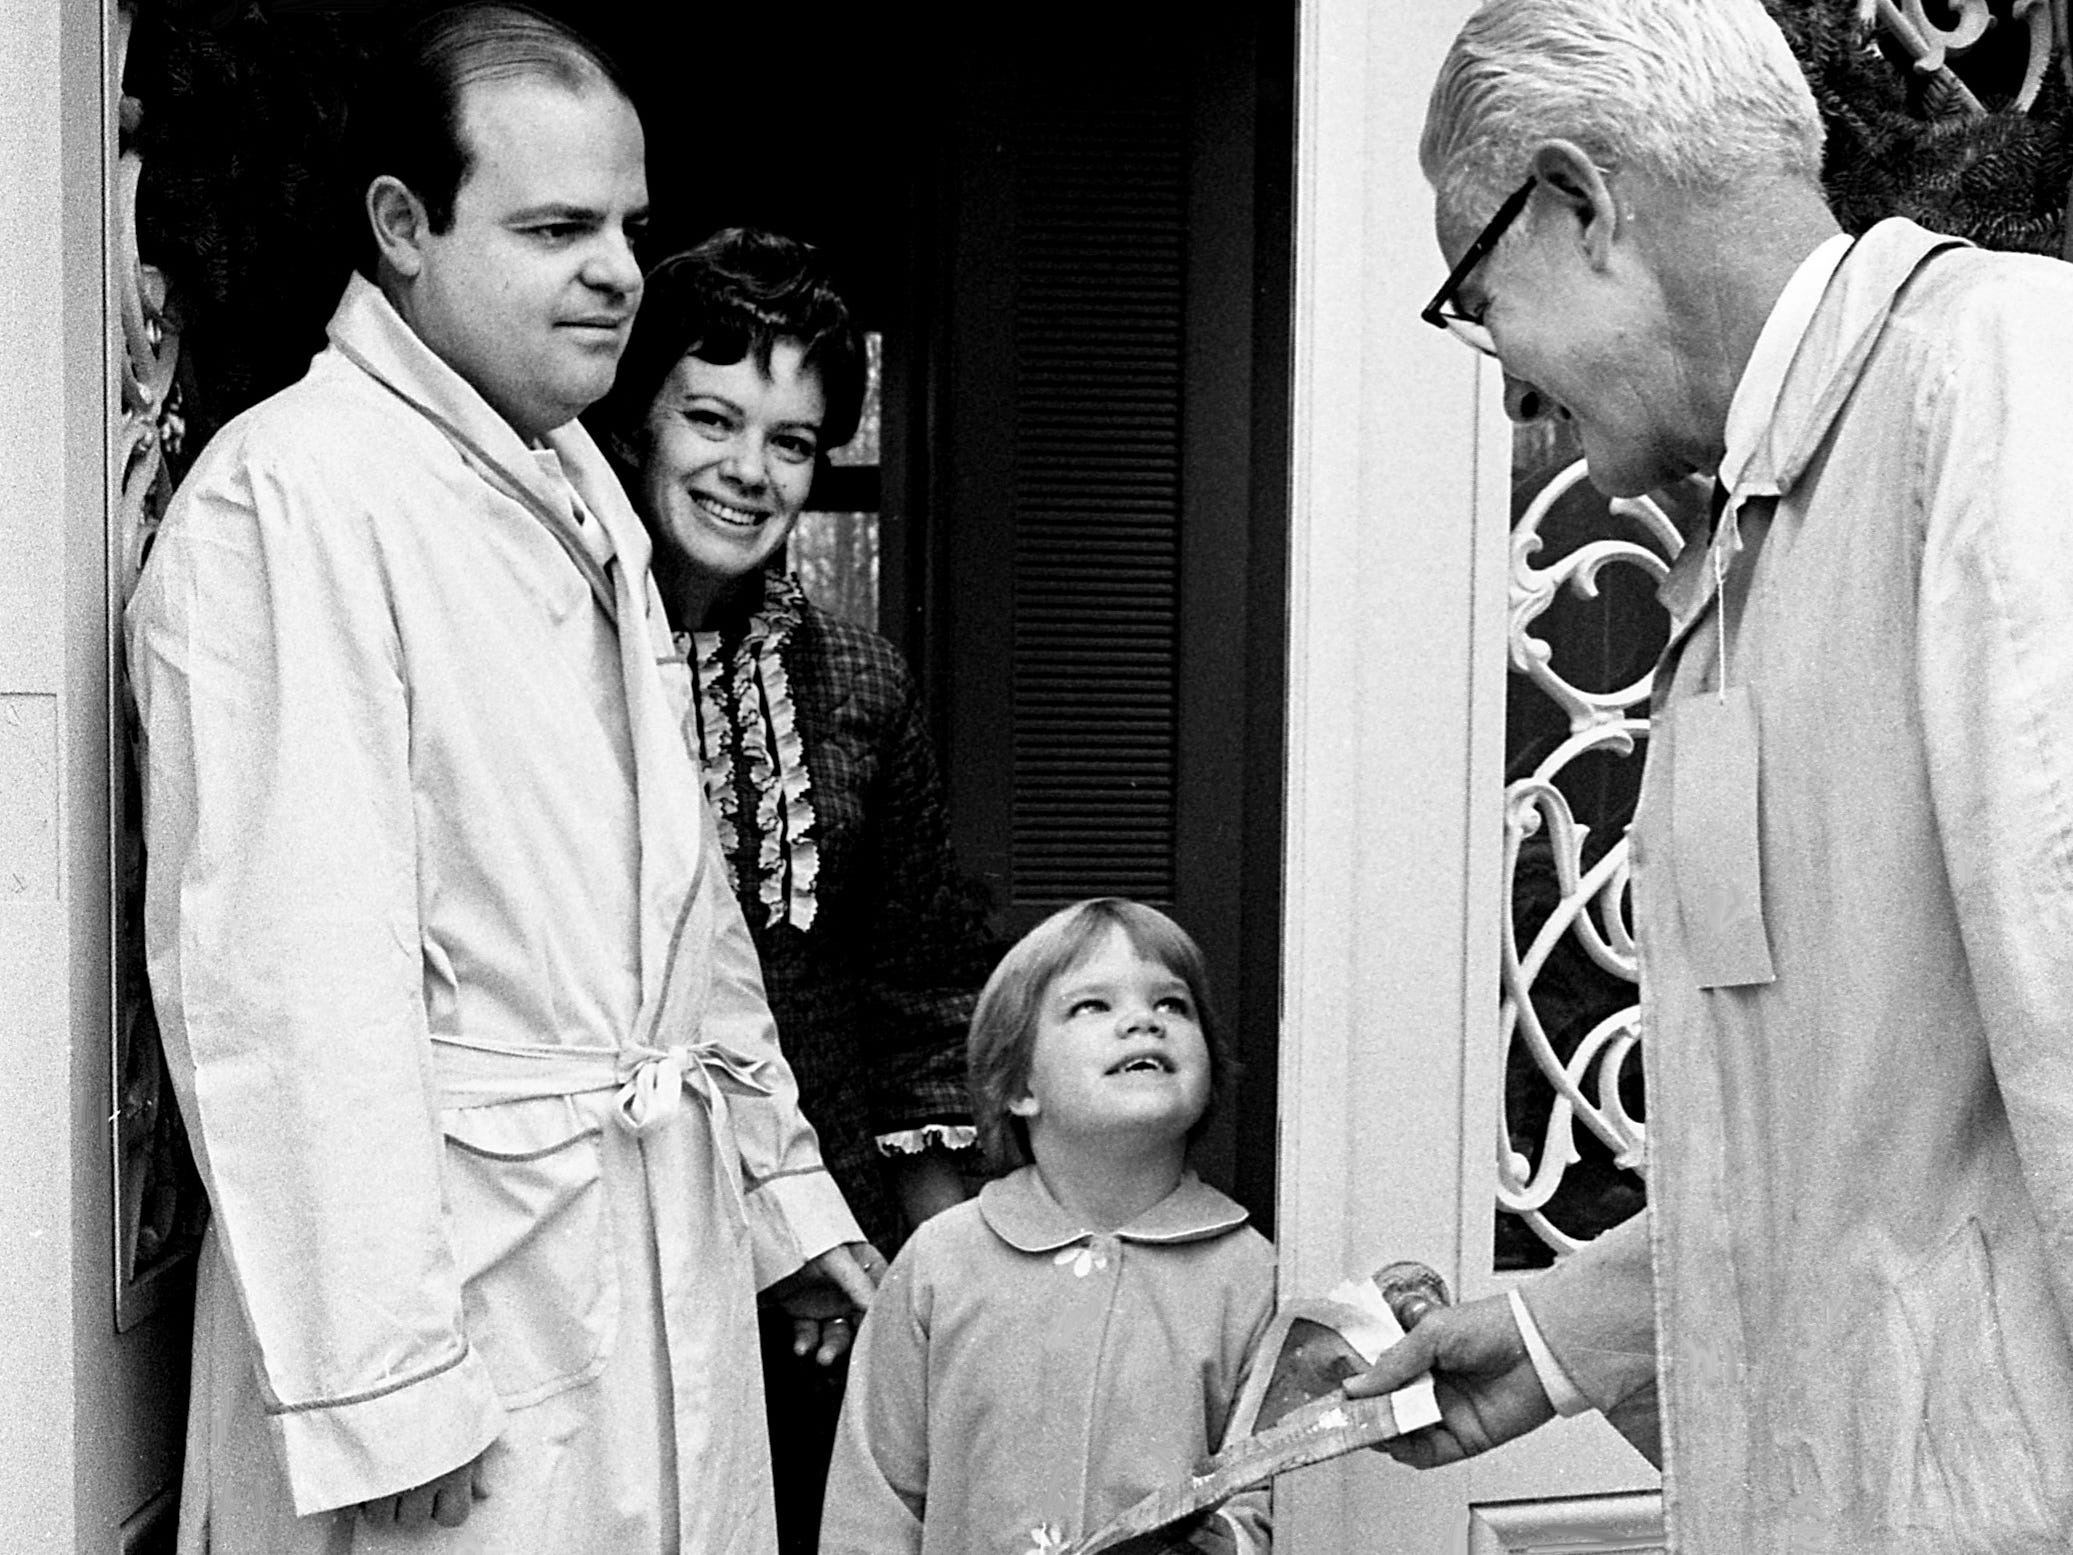 J.E. Wallace, right, Big Brothers second vice president, was an early visitor to the home of Mr. and Mrs. Sydney F. Keeble Jr. on Truxton Place Dec. 22, 1968 as he sells a Big Brothers Christmas tabloid to their five-year-old daughter, Grace.